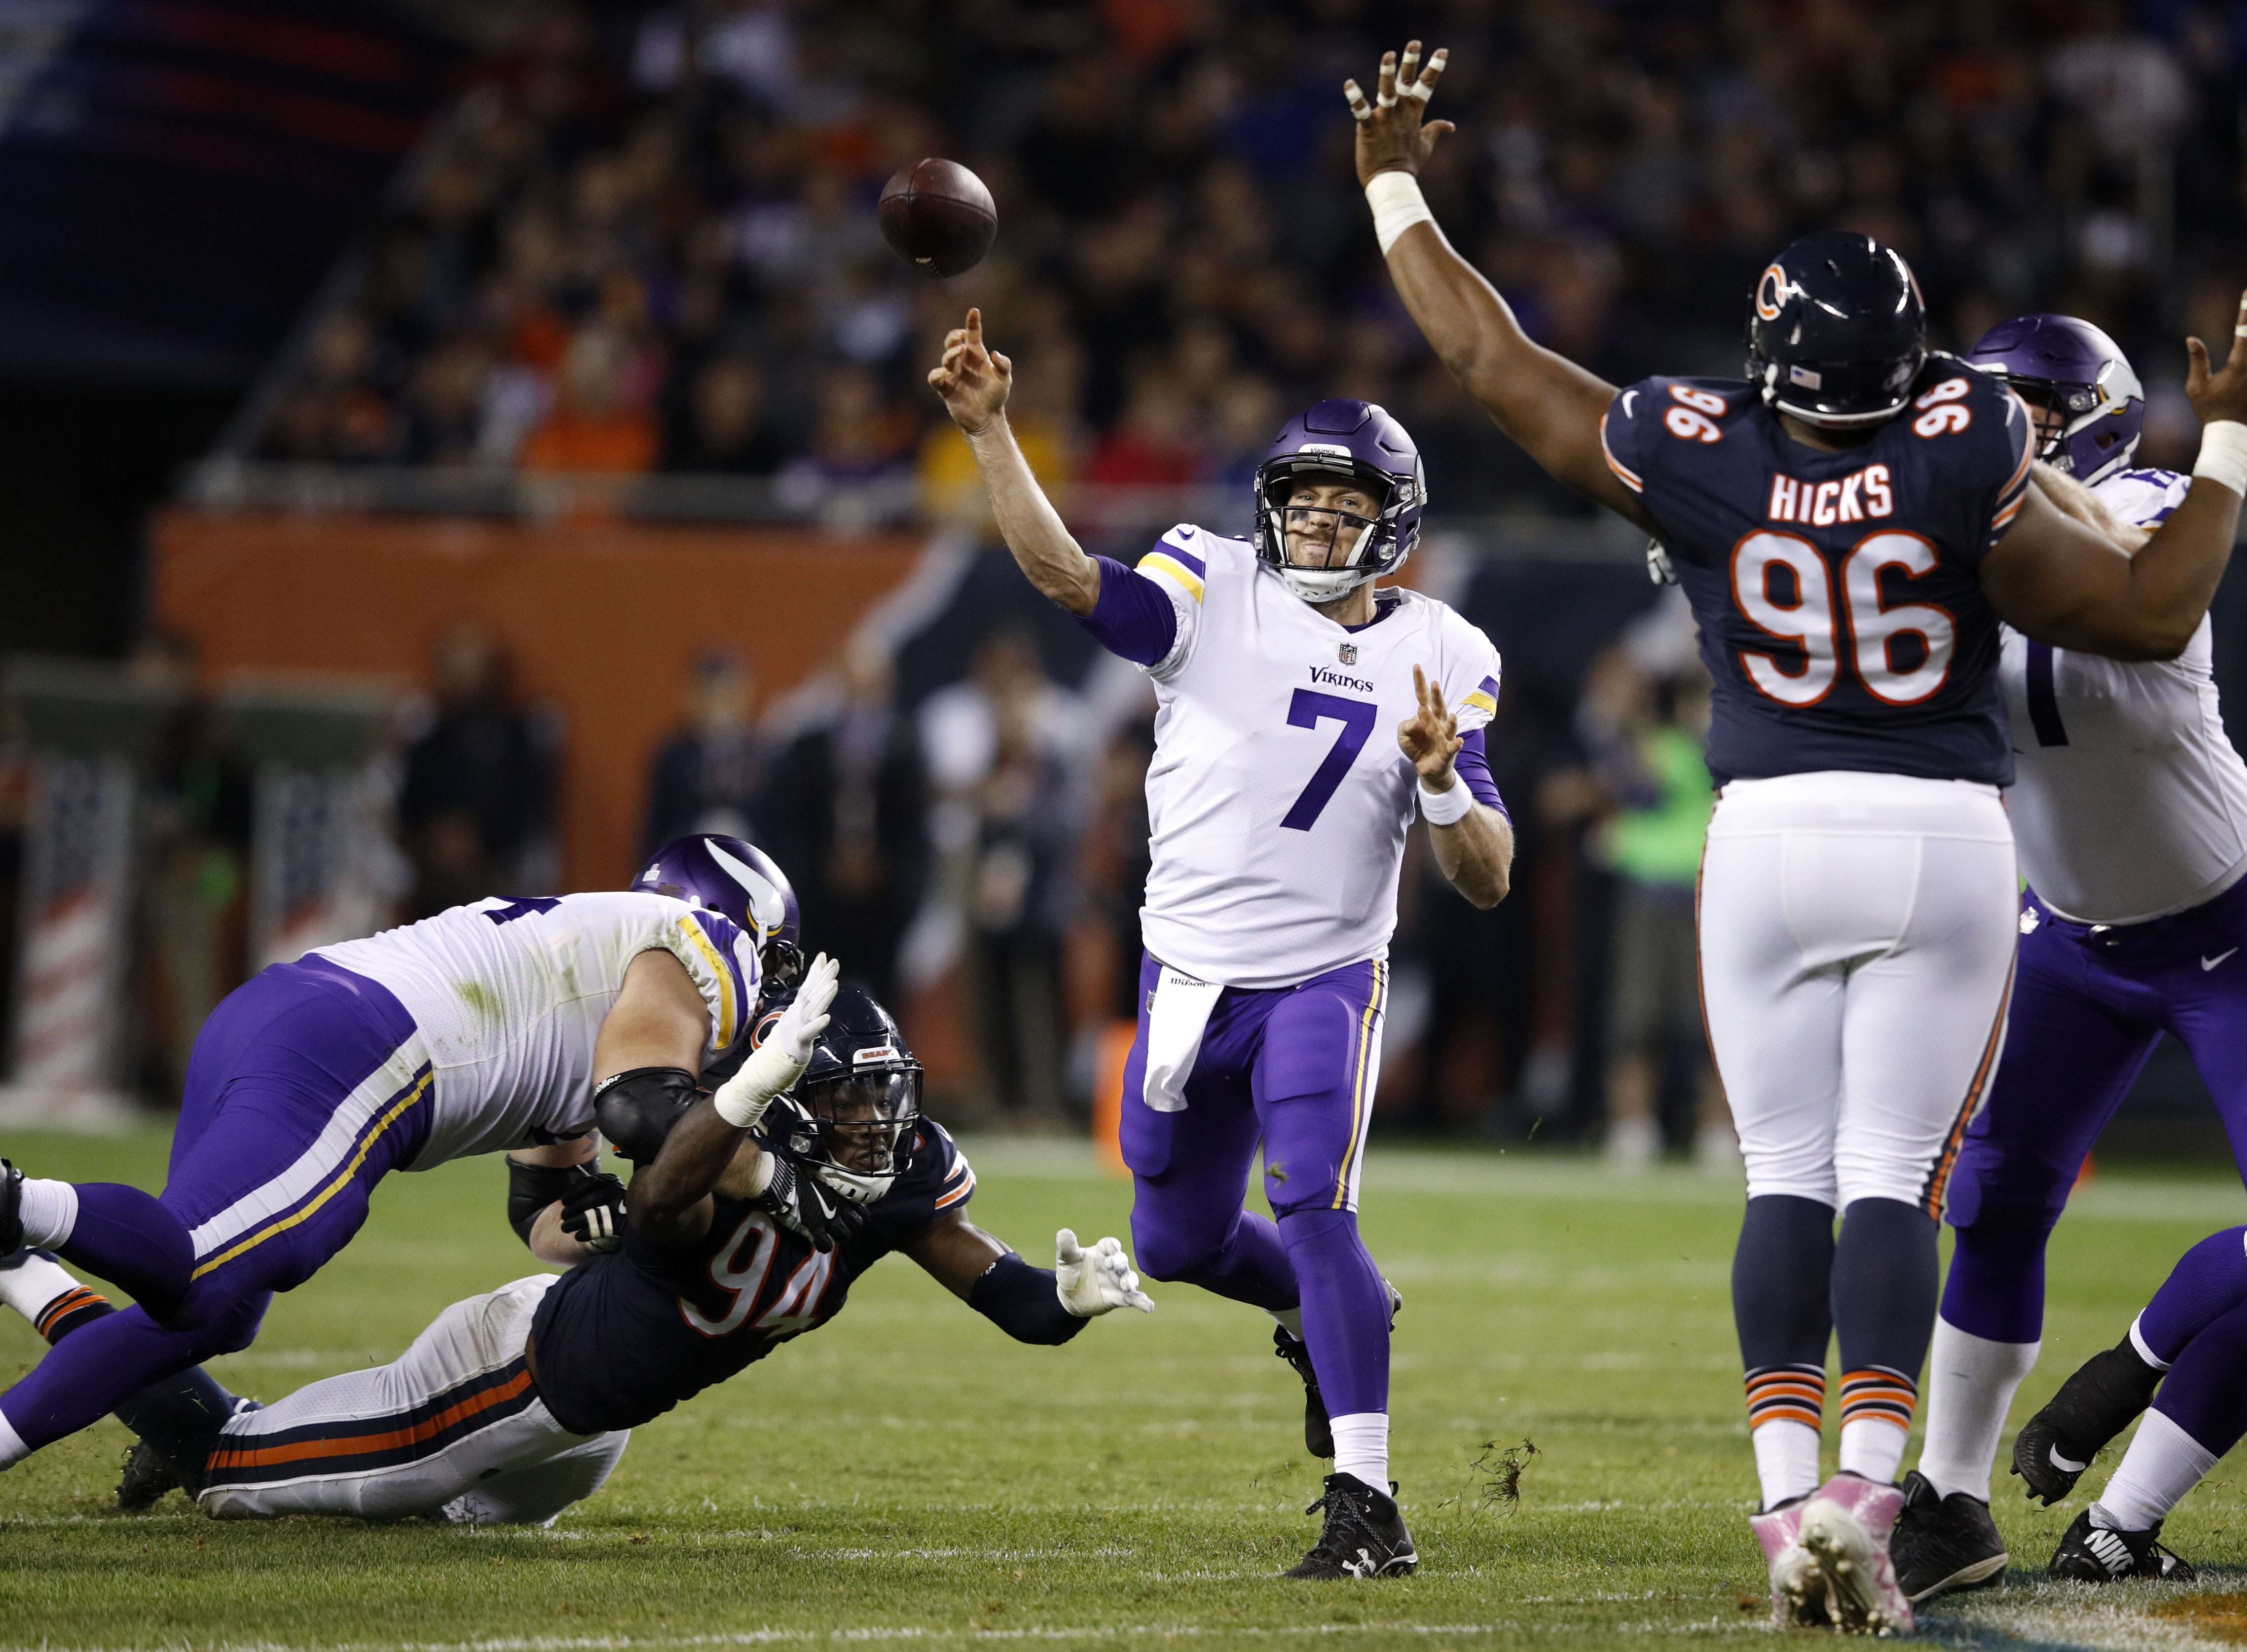 Schmidt's Week 5 game grades: Minnesota Vikings vs. Chicago Bears